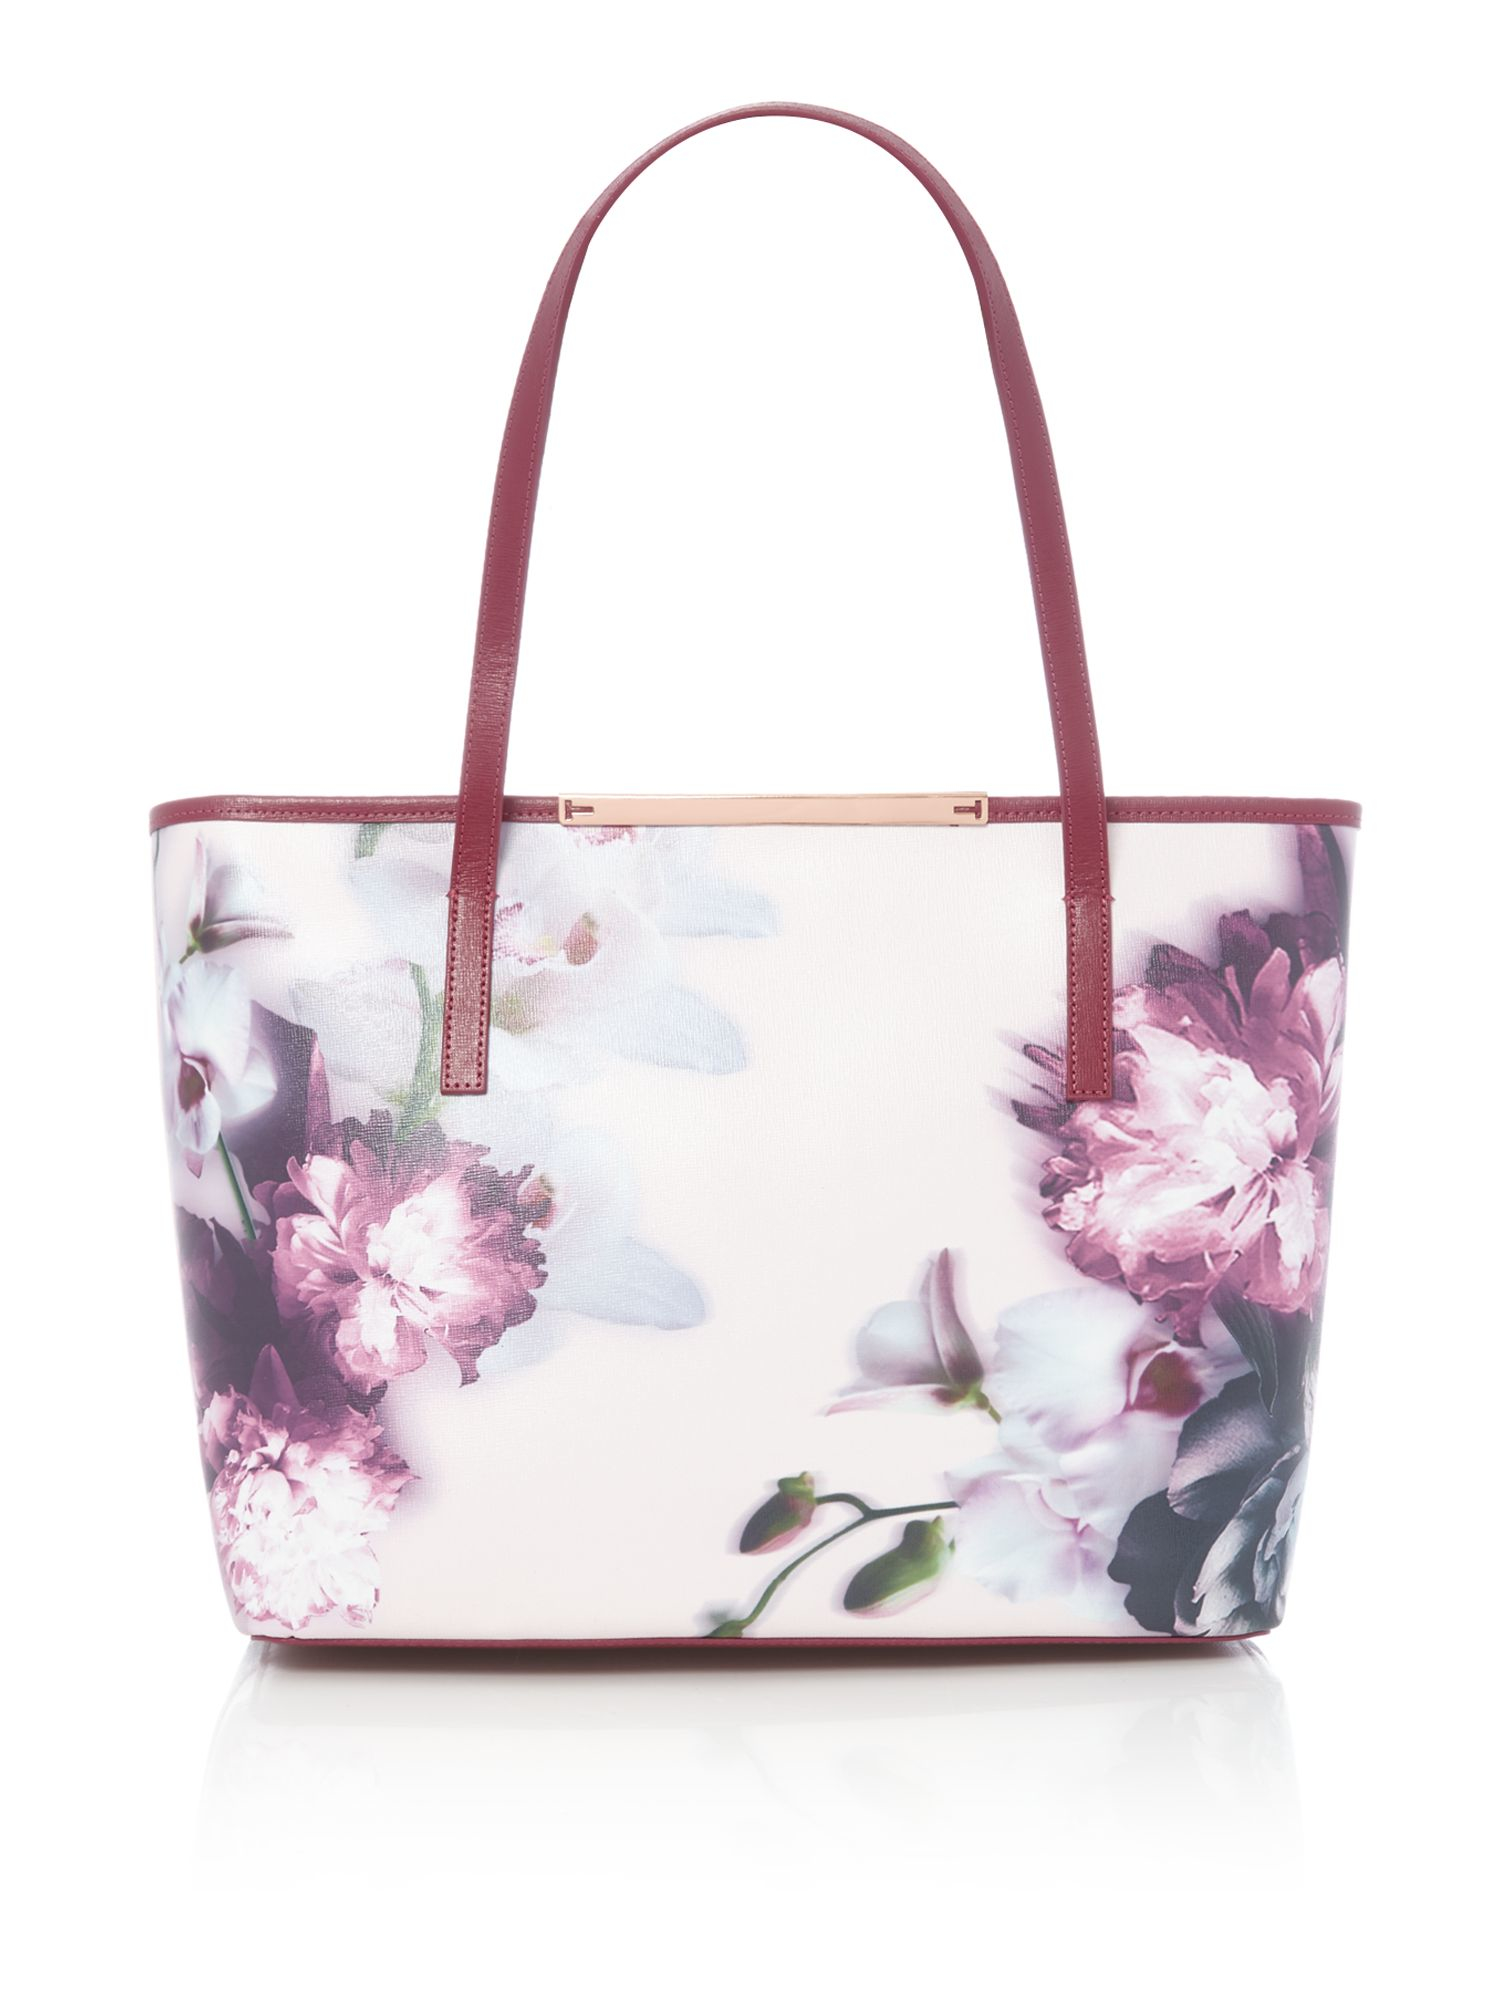 Ted Baker Lietta Pink Floral Large Tote Bag Lyst